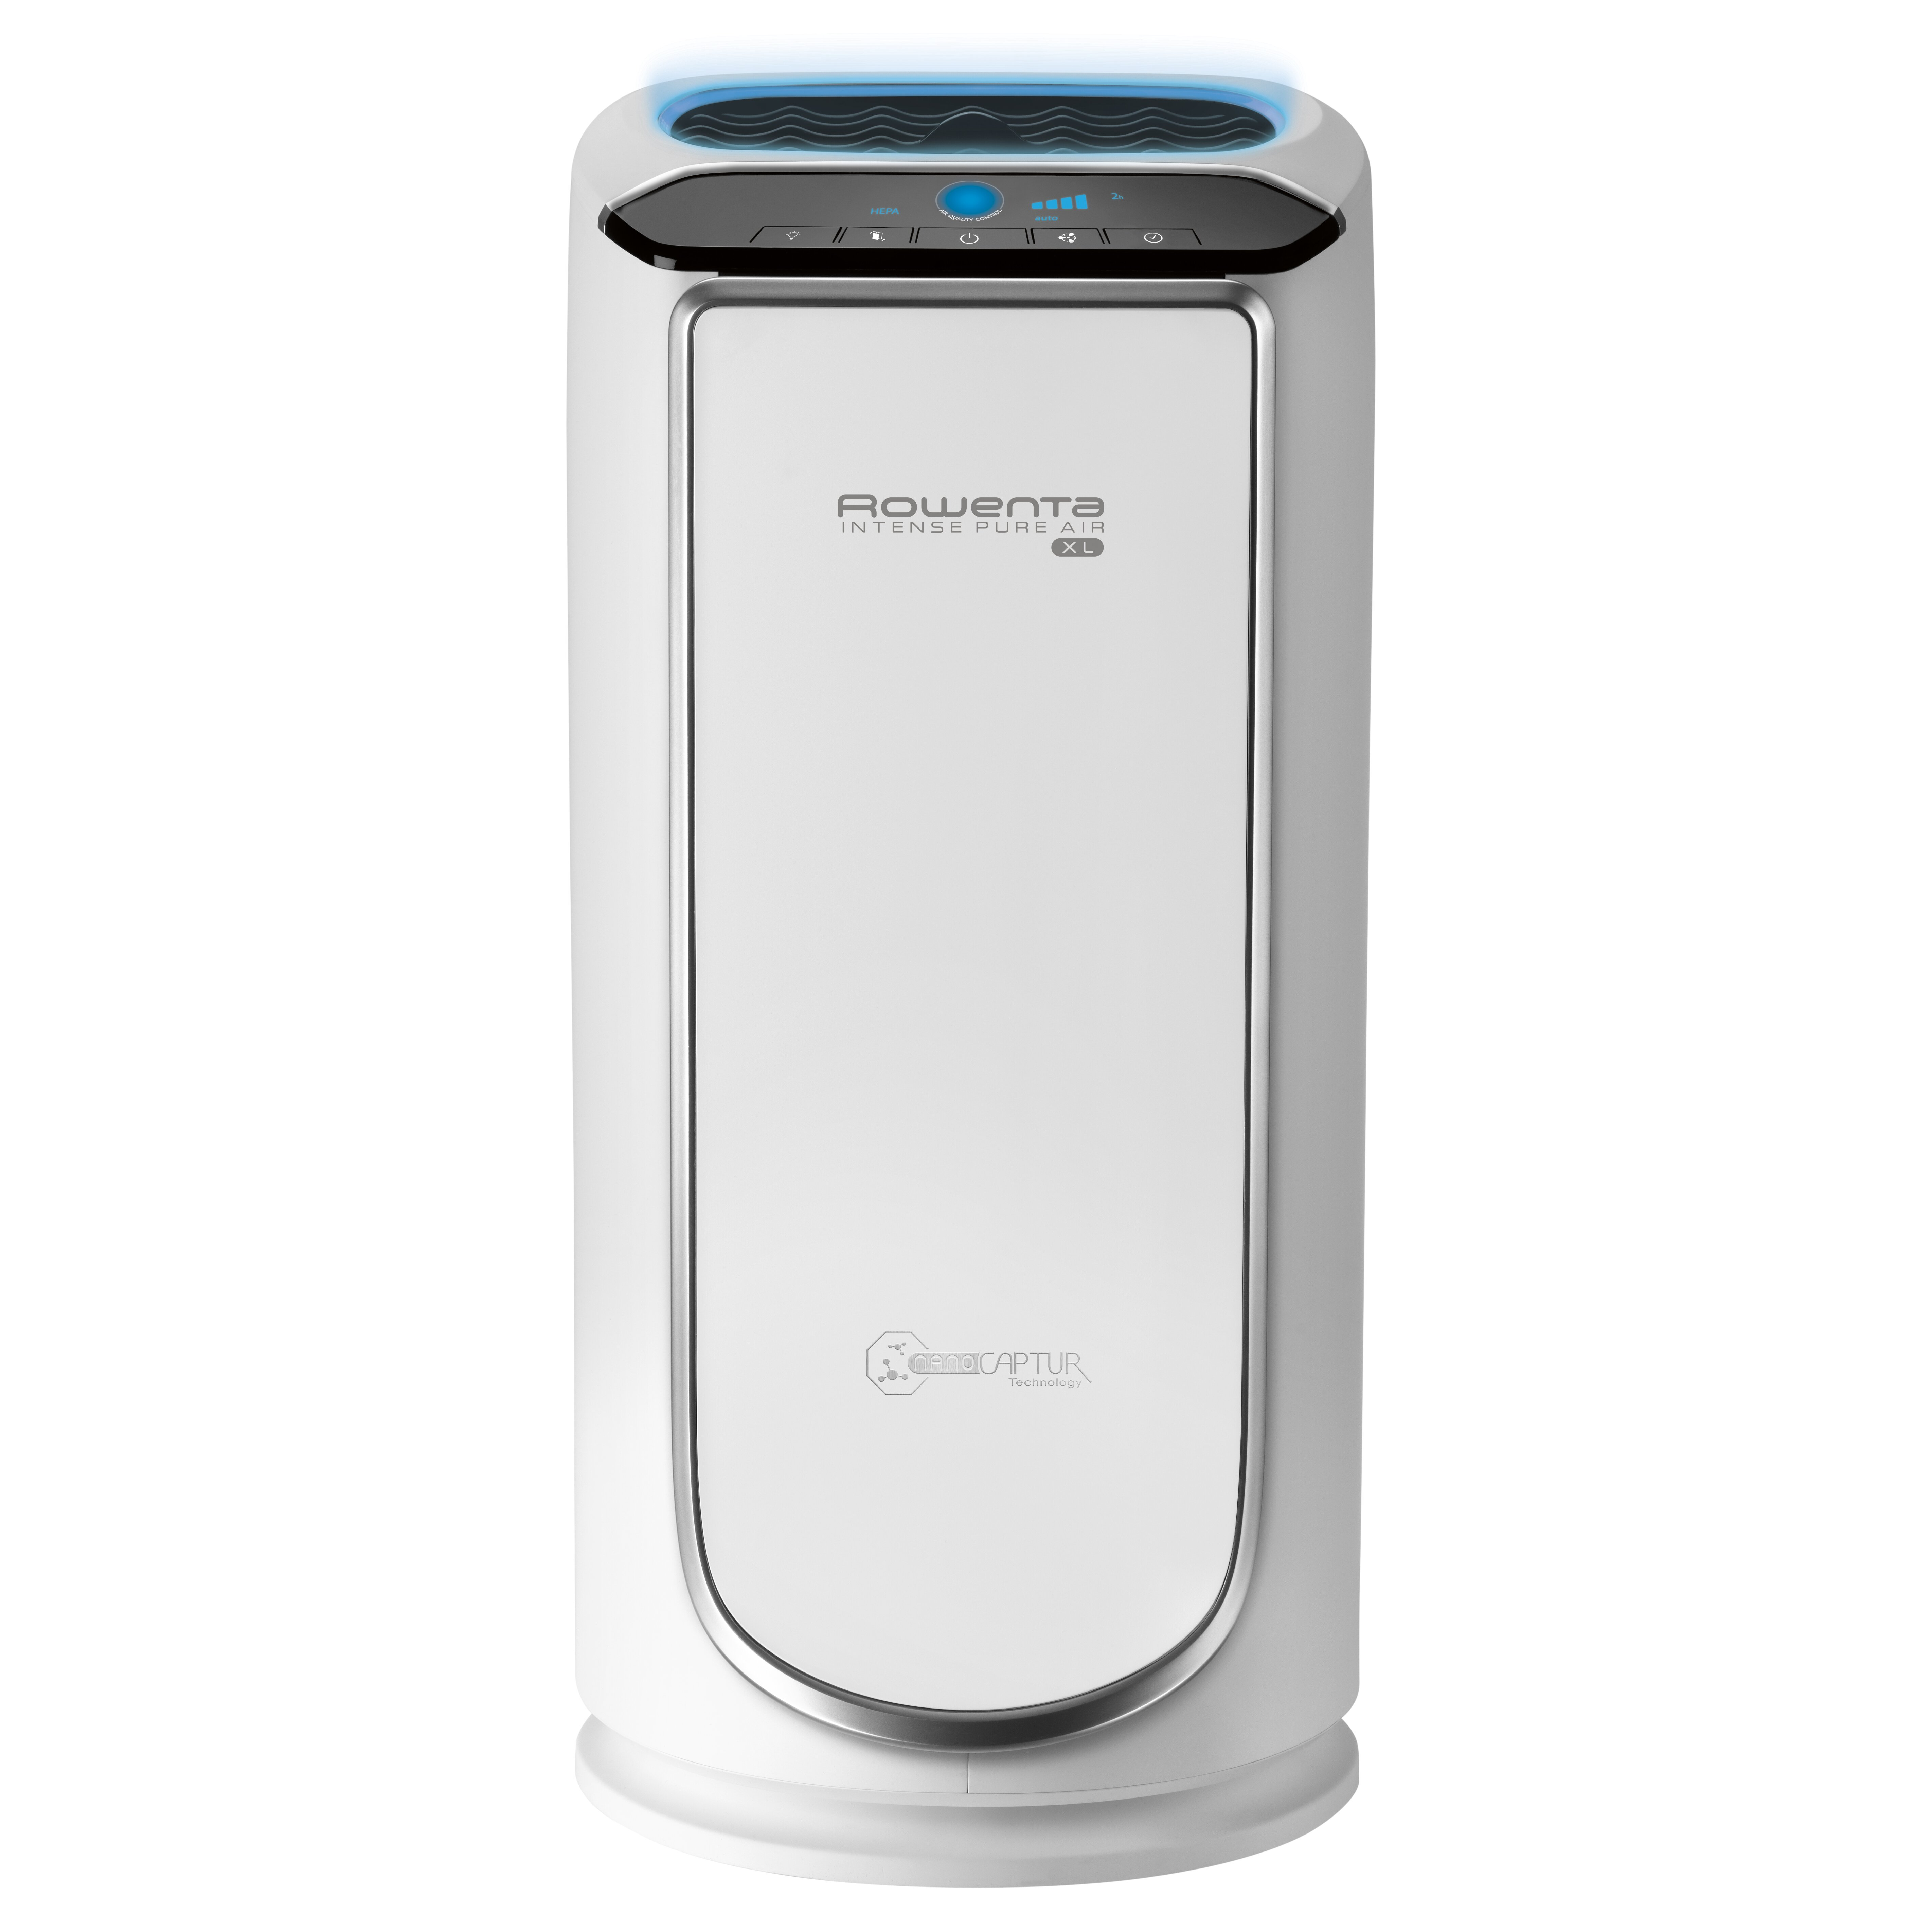 Rowenta intense room hepa air purifier reviews wayfair for Bedroom air purifier